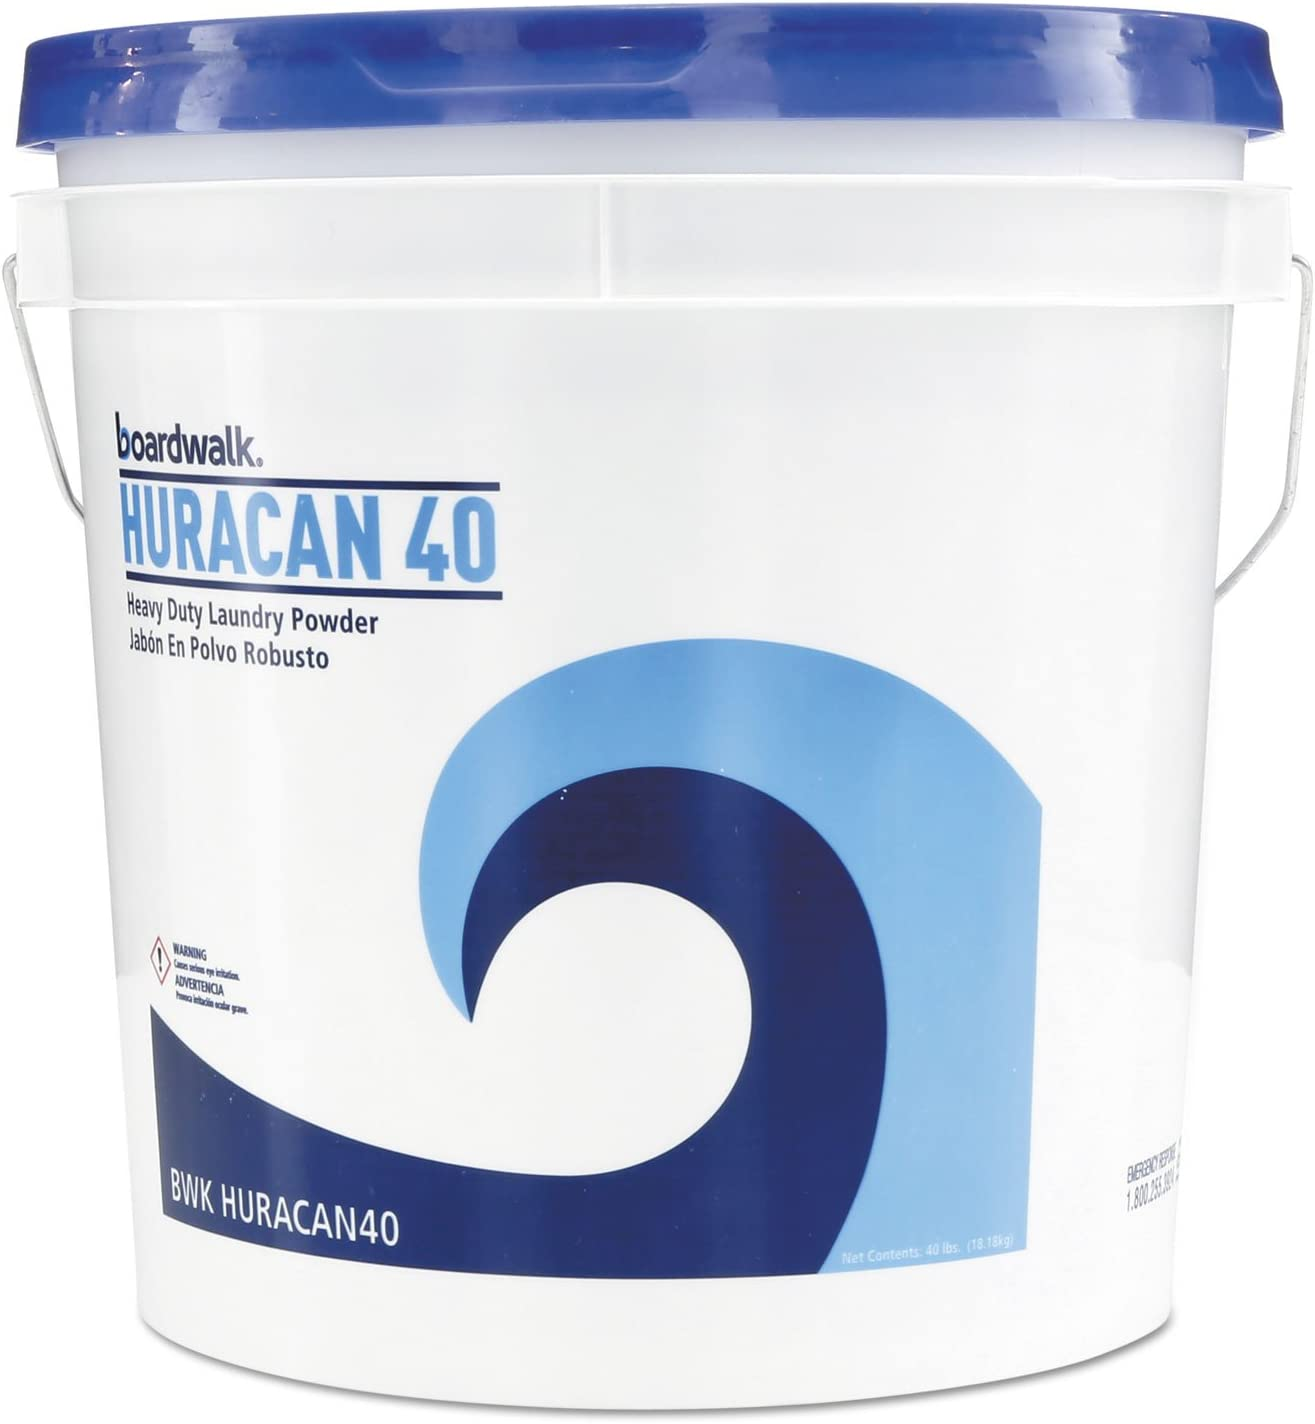 Boardwalk HURACAN40 Low Suds Industrial Powder Laundry Detergent, Fresh Lemon Scent, 40lb Pail